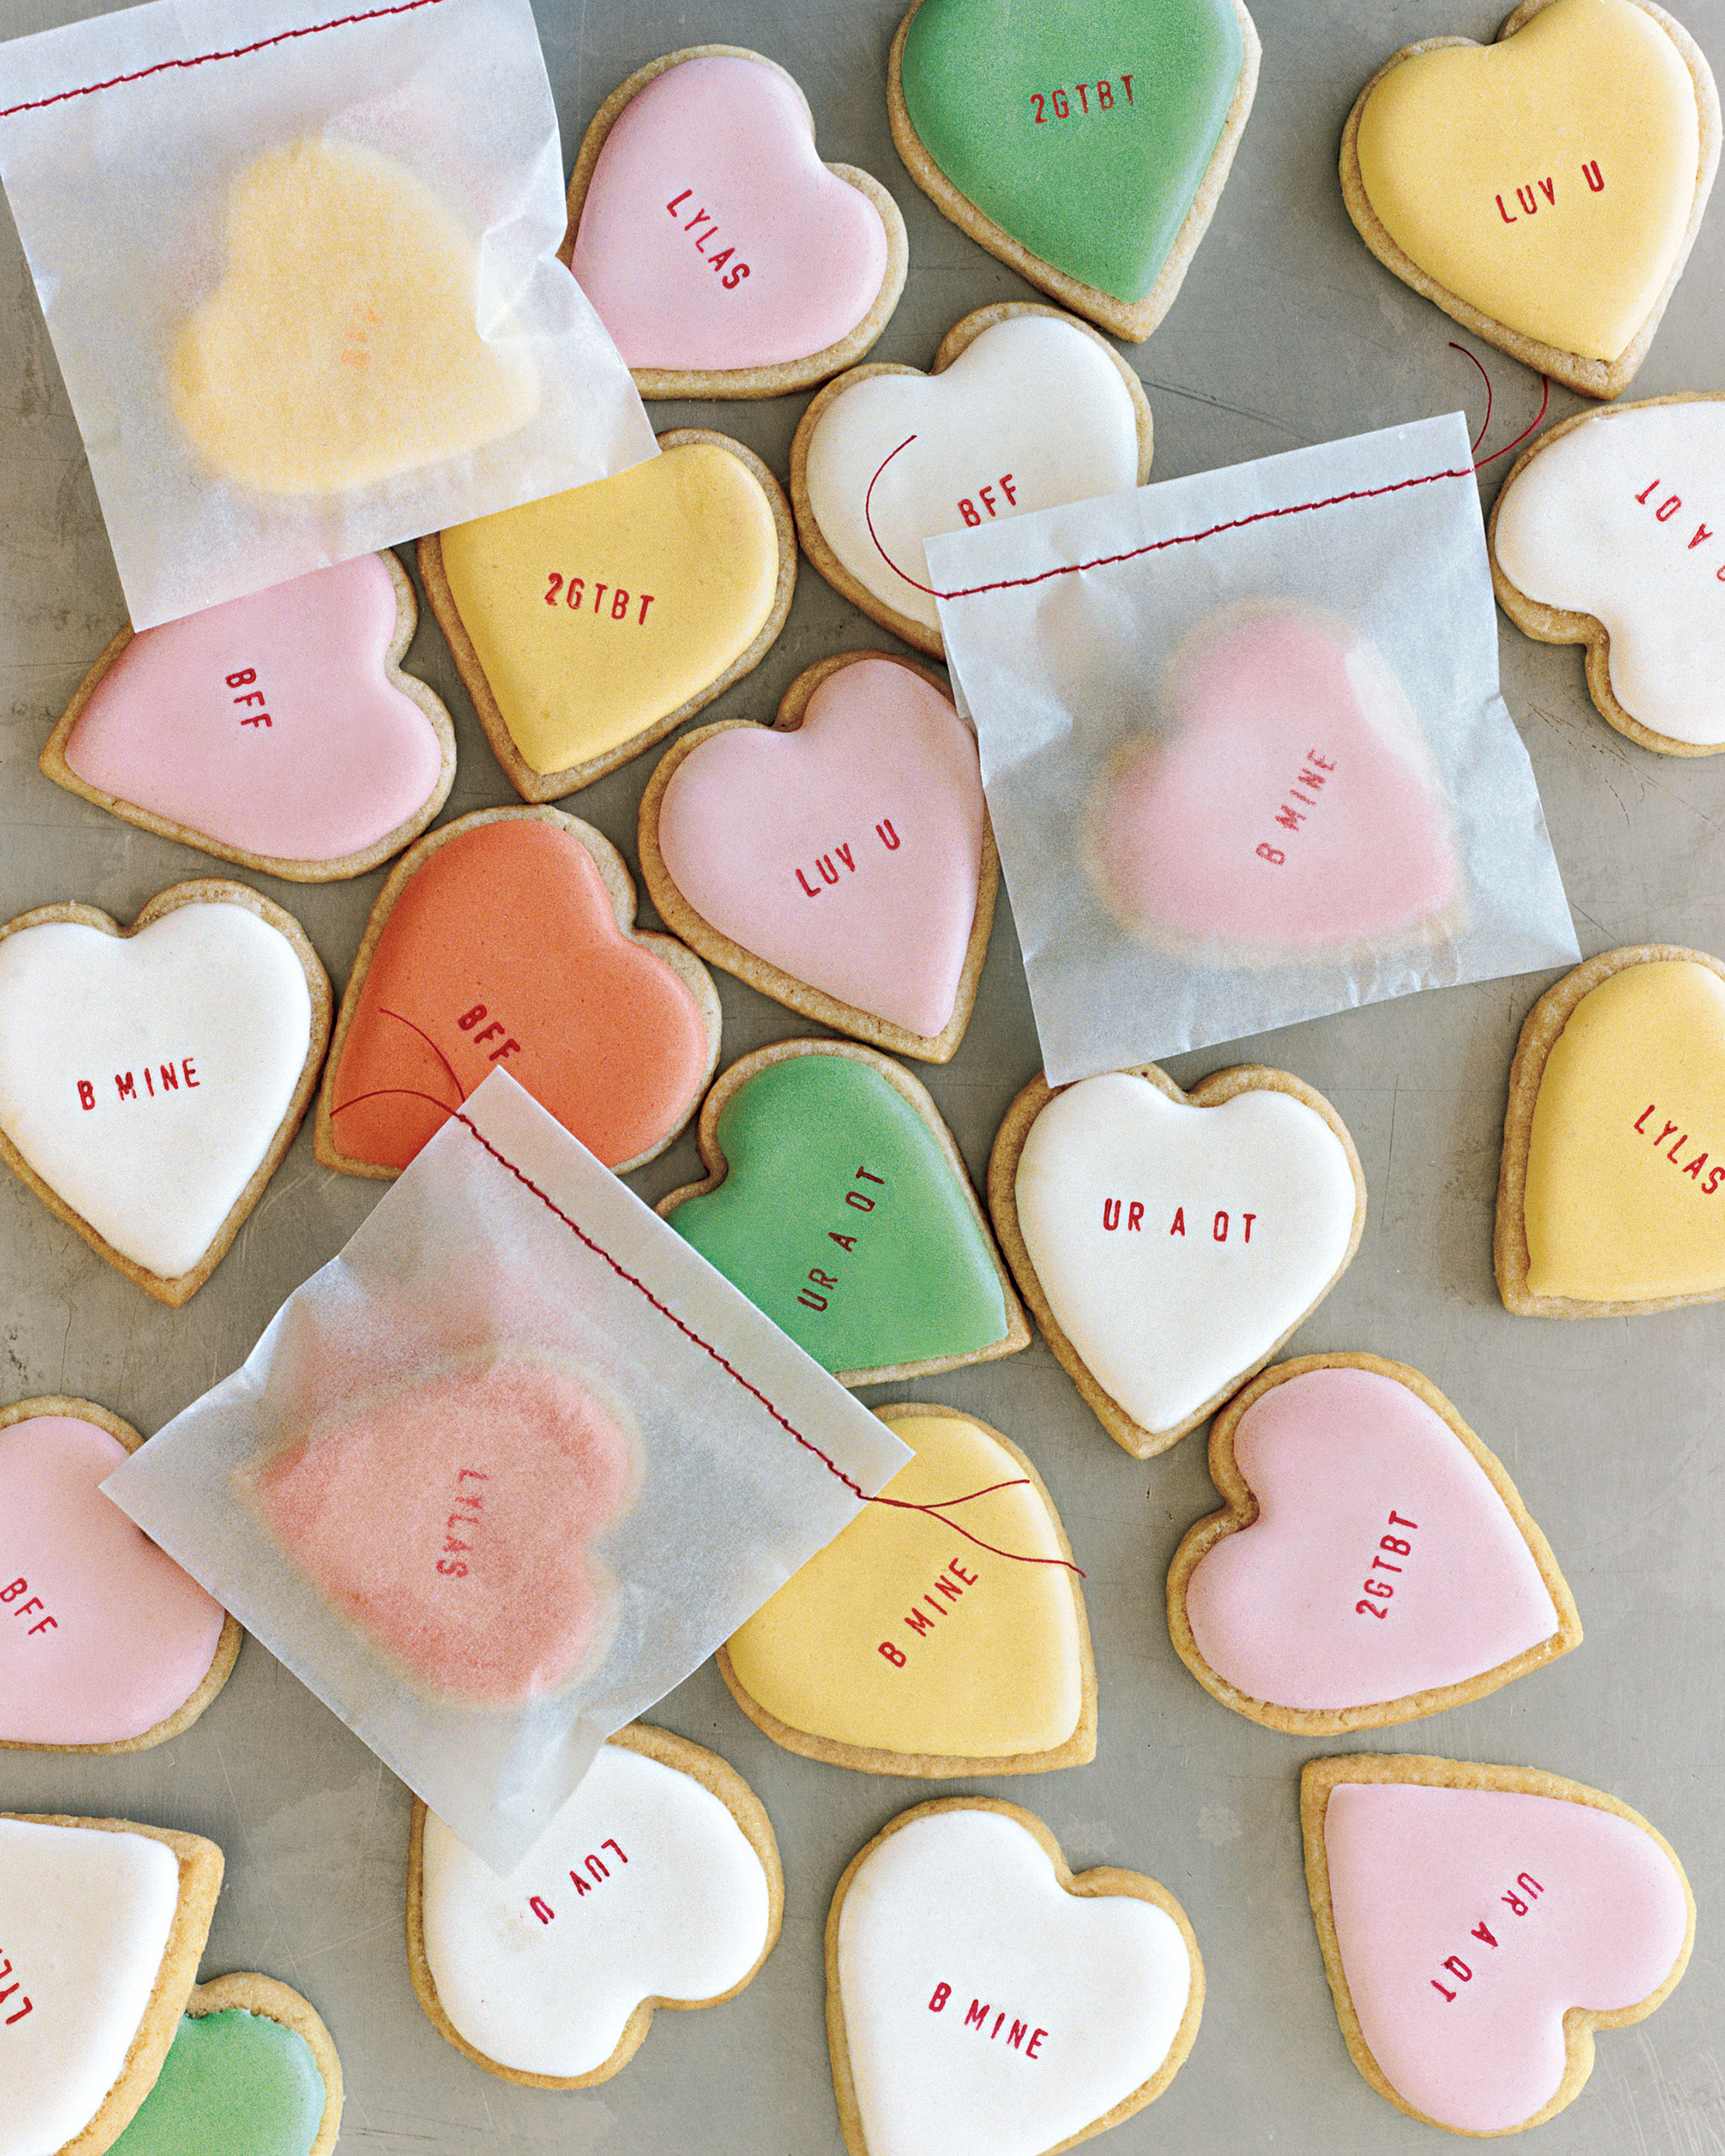 25 Heart-Shaped Treats to Send to Your Valentine